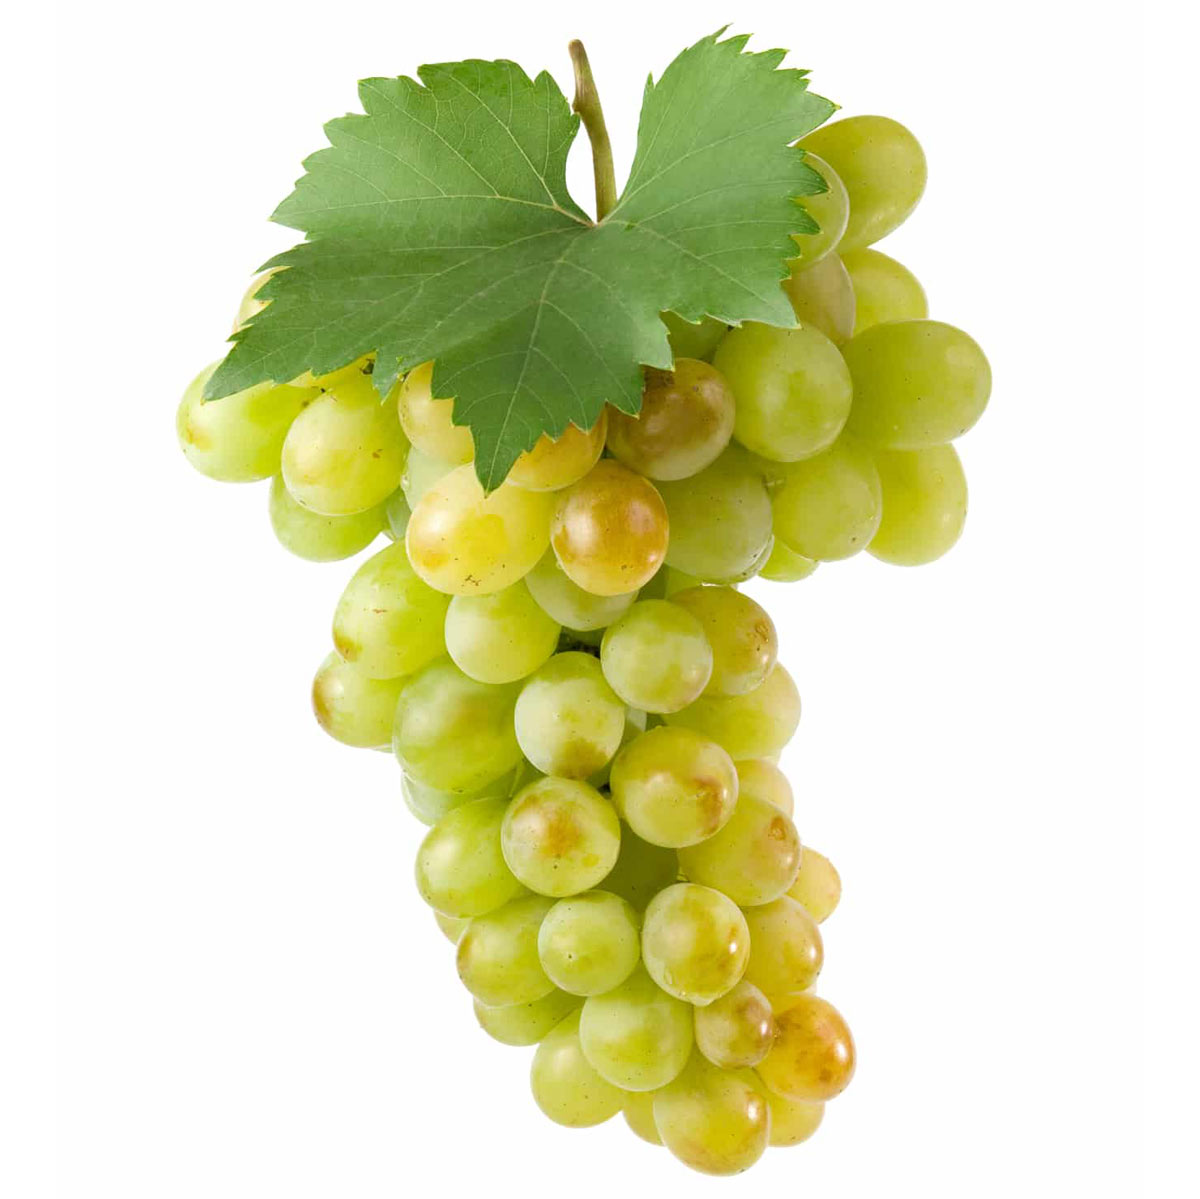 Trebbiano grapes with green leaves